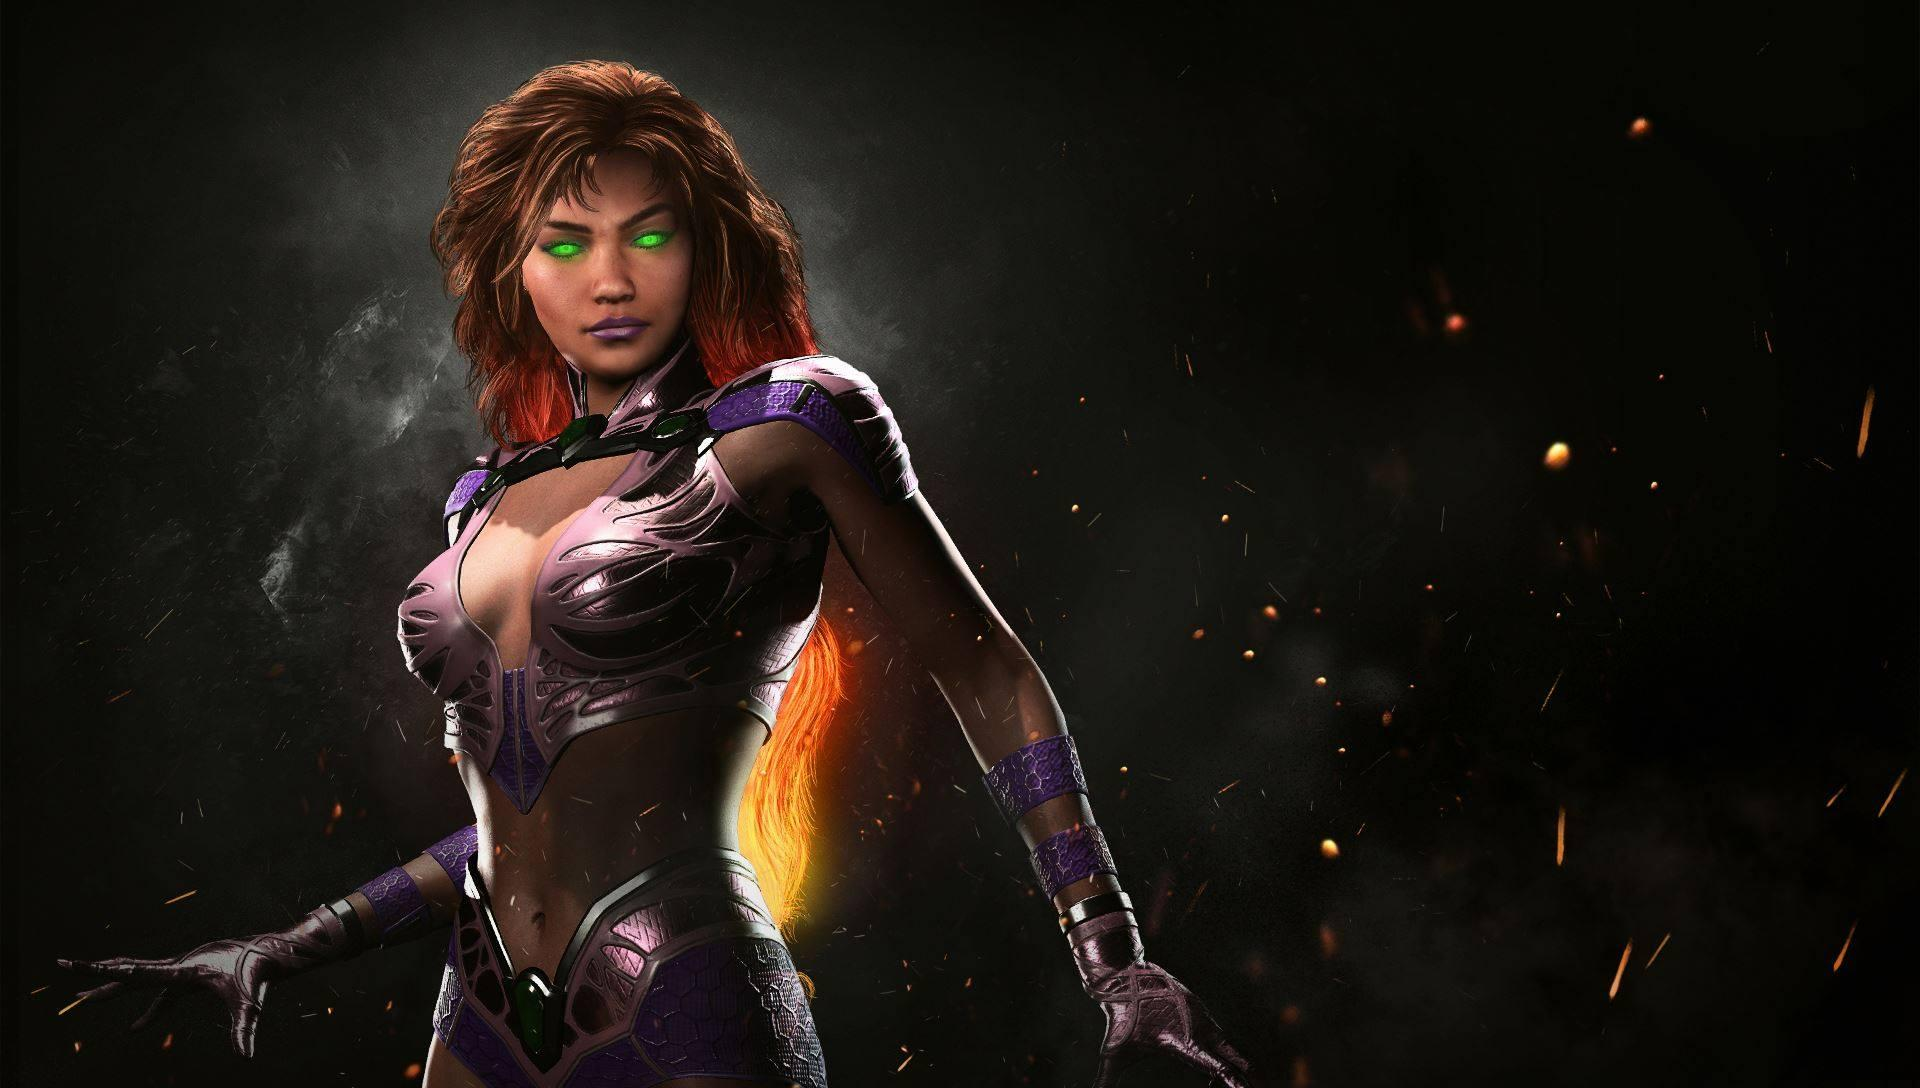 Injustice 2 Reveals Starfire As A New Playable Character